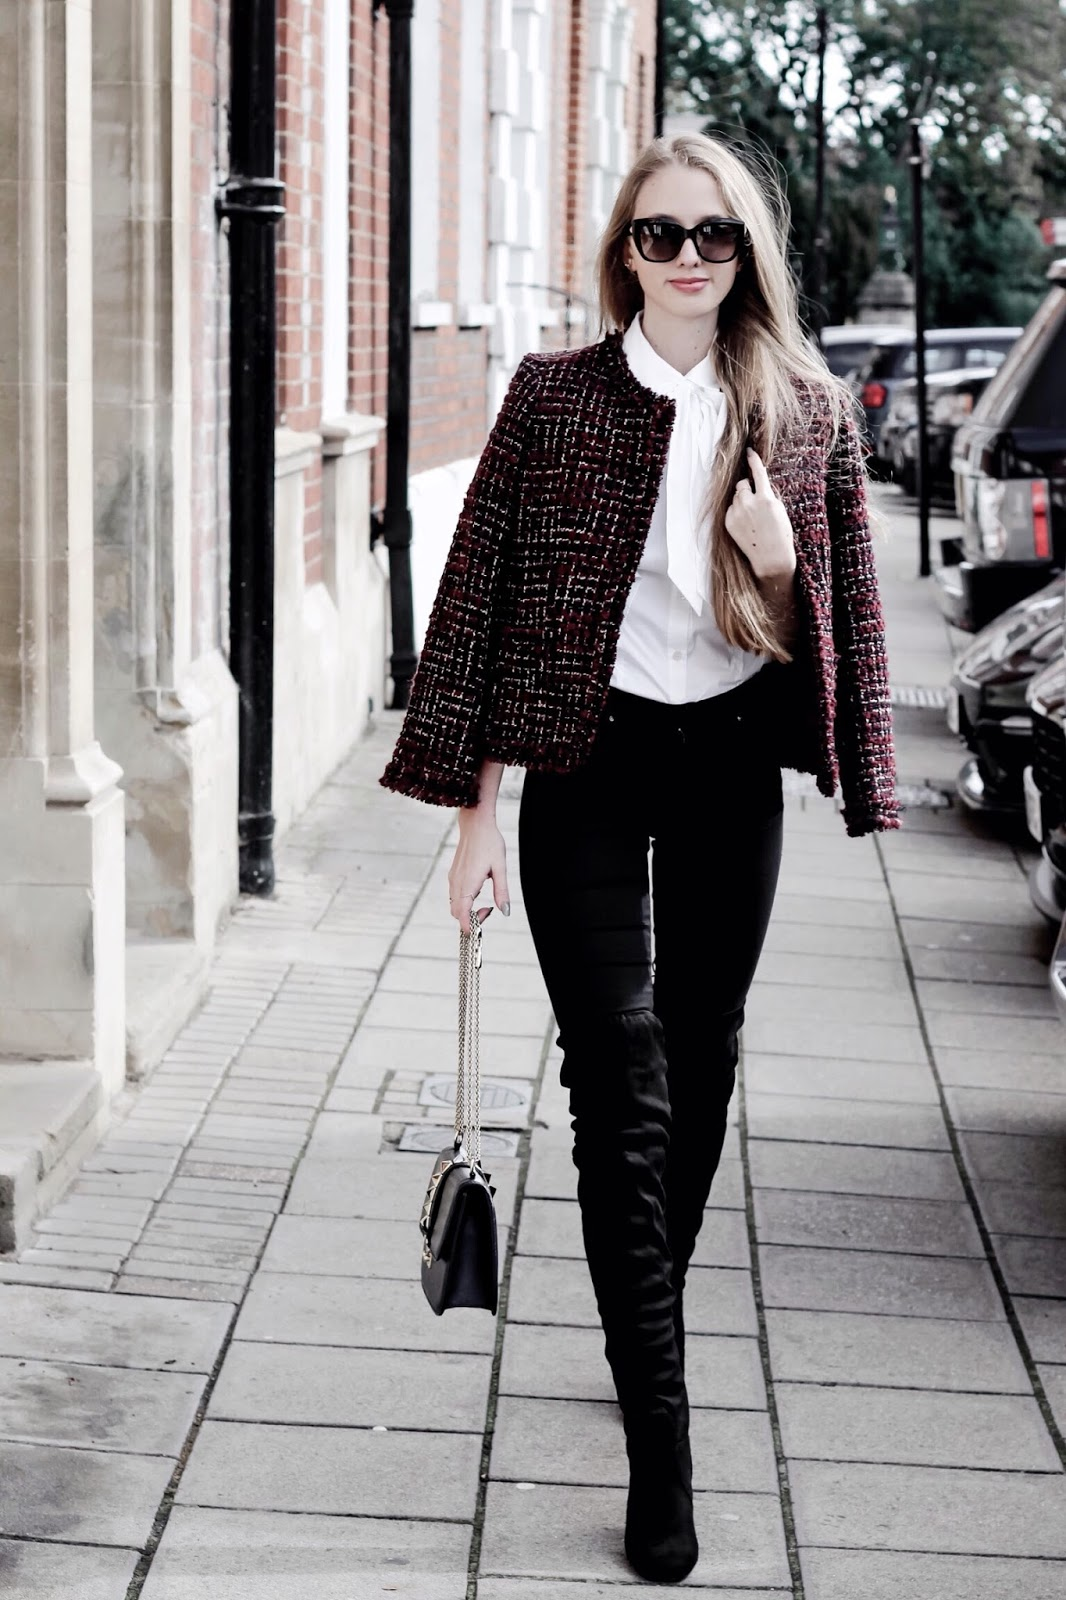 How to Look Chic in a Tweed Jacket in Winter